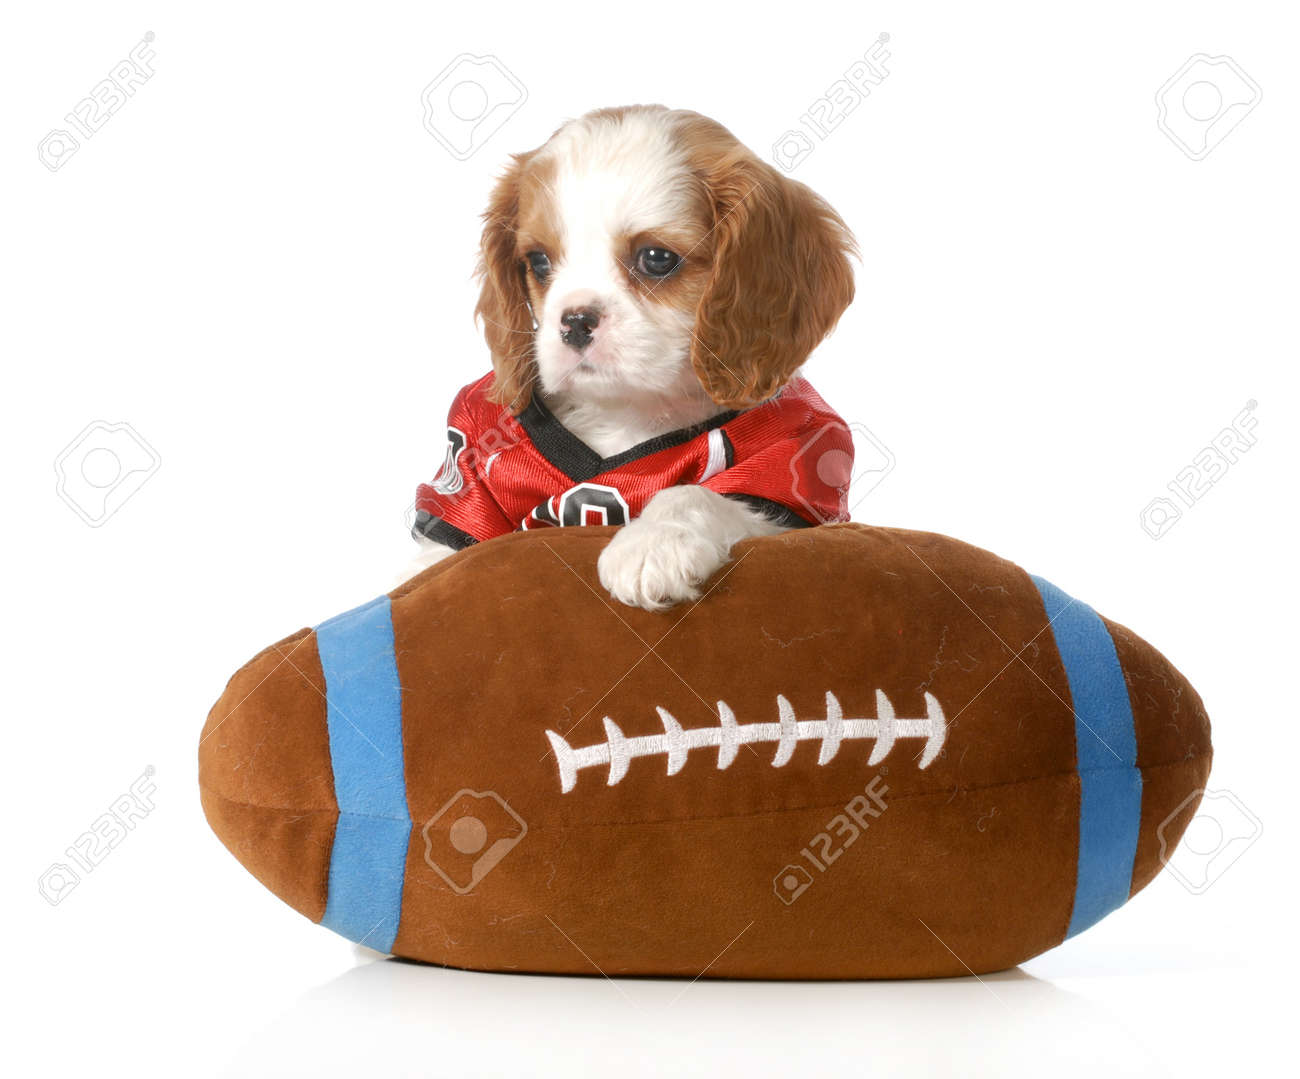 Cool Charles Spaniel Brown Adorable Dog - 20310164-sports-hound-cute-cavalier-king-charles-spaniel-puppy-dressed-up-like-a-football-player-with-stuffed  You Should Have_184816  .jpg